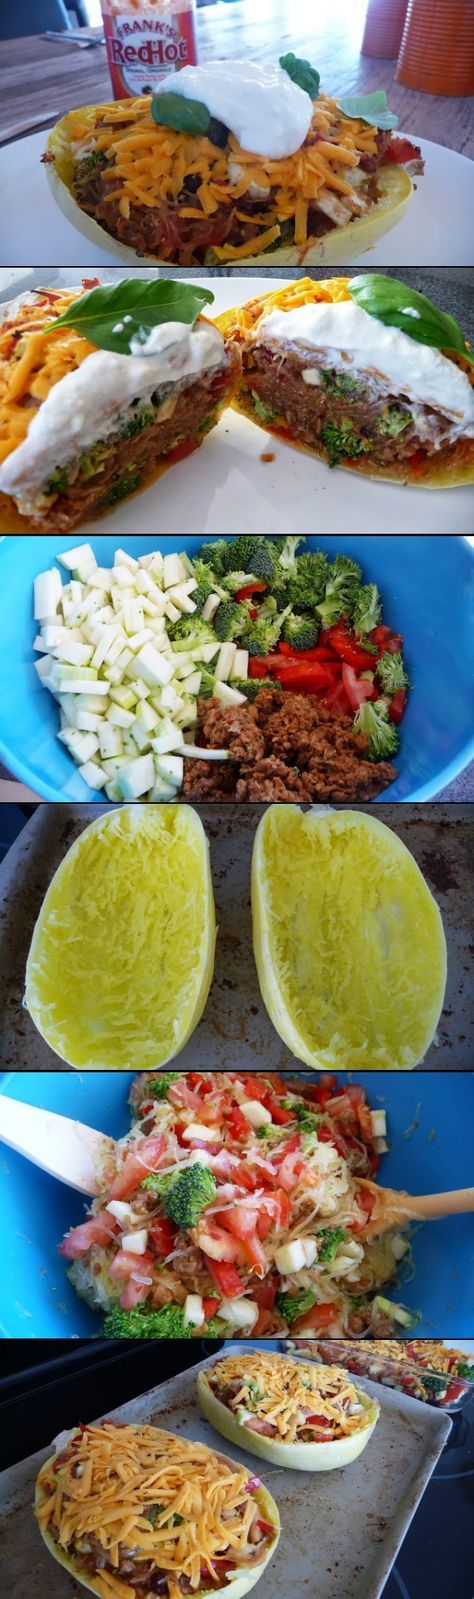 Twice Baked Spaghetti Squash! Healthy, low calorie, filling and delicious! I'll have to use real ground round and dairy though ...ksv